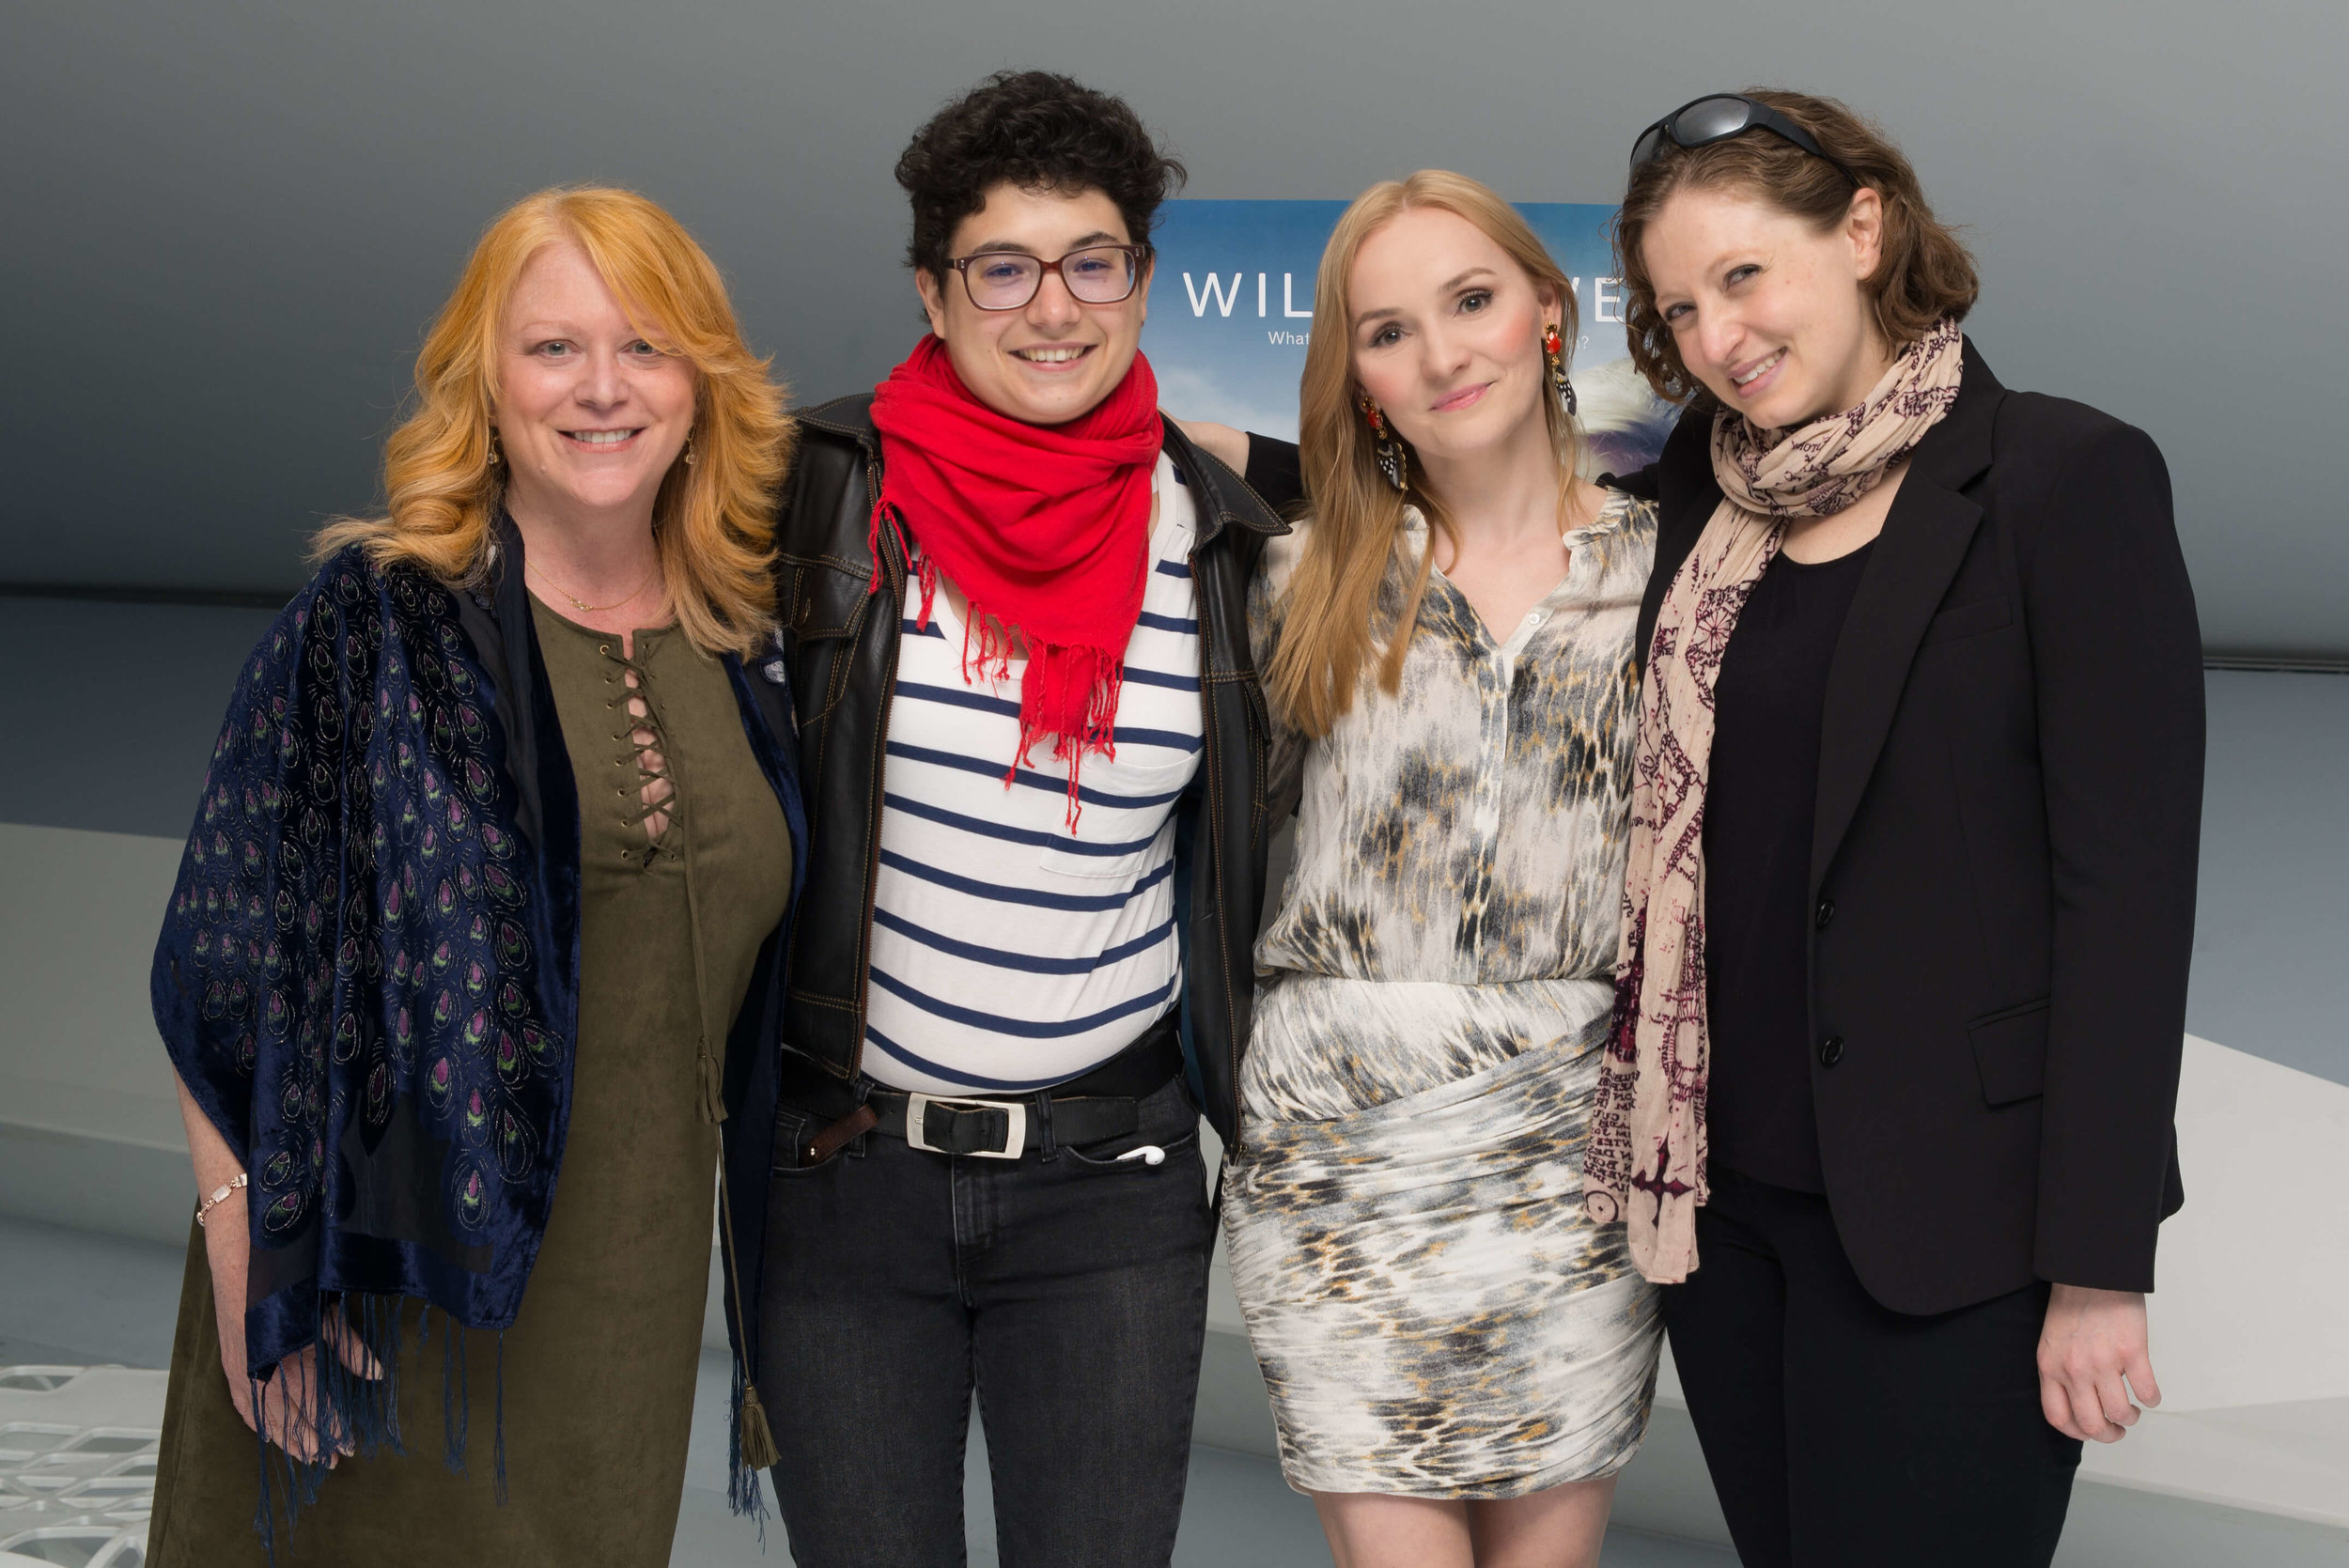 All-female creative team: director Celine Rosenthal, writer Susan Cameron, producer and lead actress Kristi Roosmaa and director of photography Charlotte Dupré.